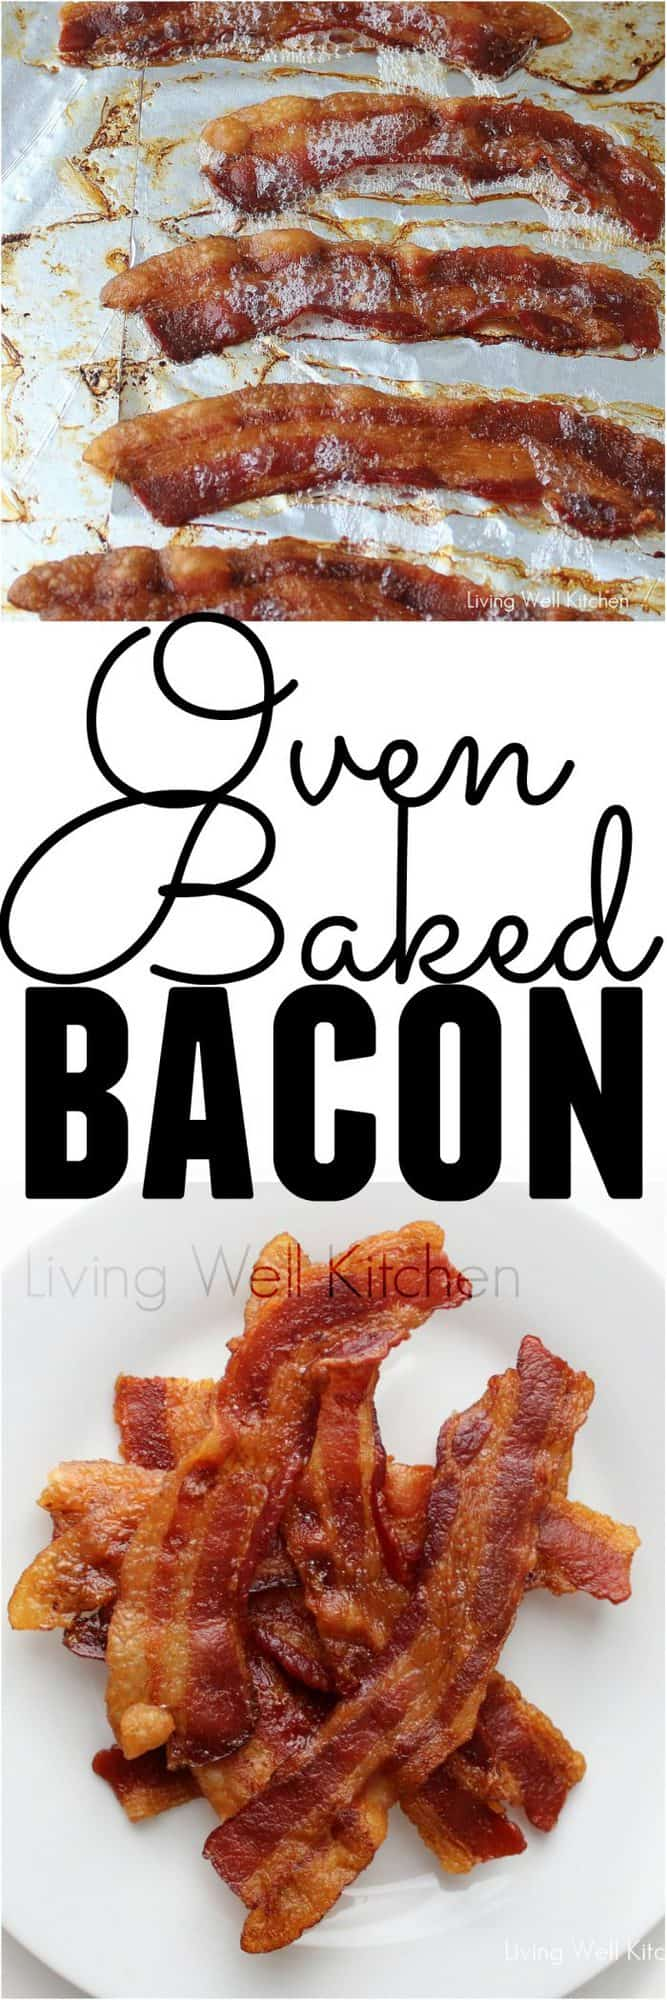 Cooking bacon in the oven is much easier and not nearly as messy or painful. This recipe for Oven Baked Bacon will change your life since you never have to labor over your bacon and risk getting continually burned